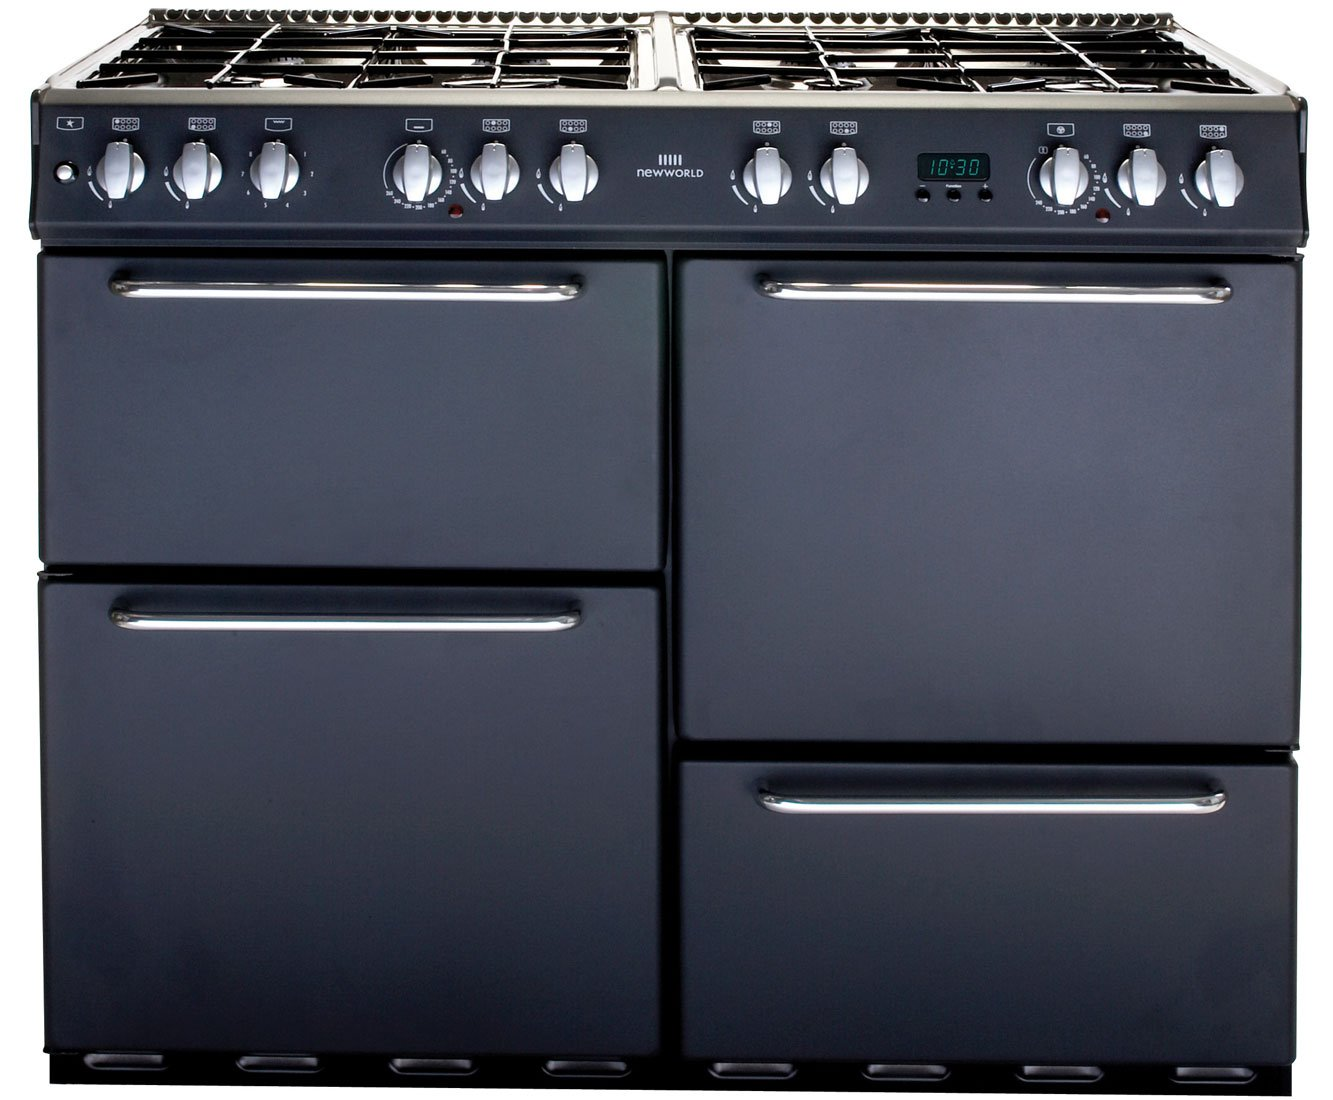 New World Kitchen Appliances Newworld Nw100gt Gas Range Cooker Free Standing Charcoal Amazon